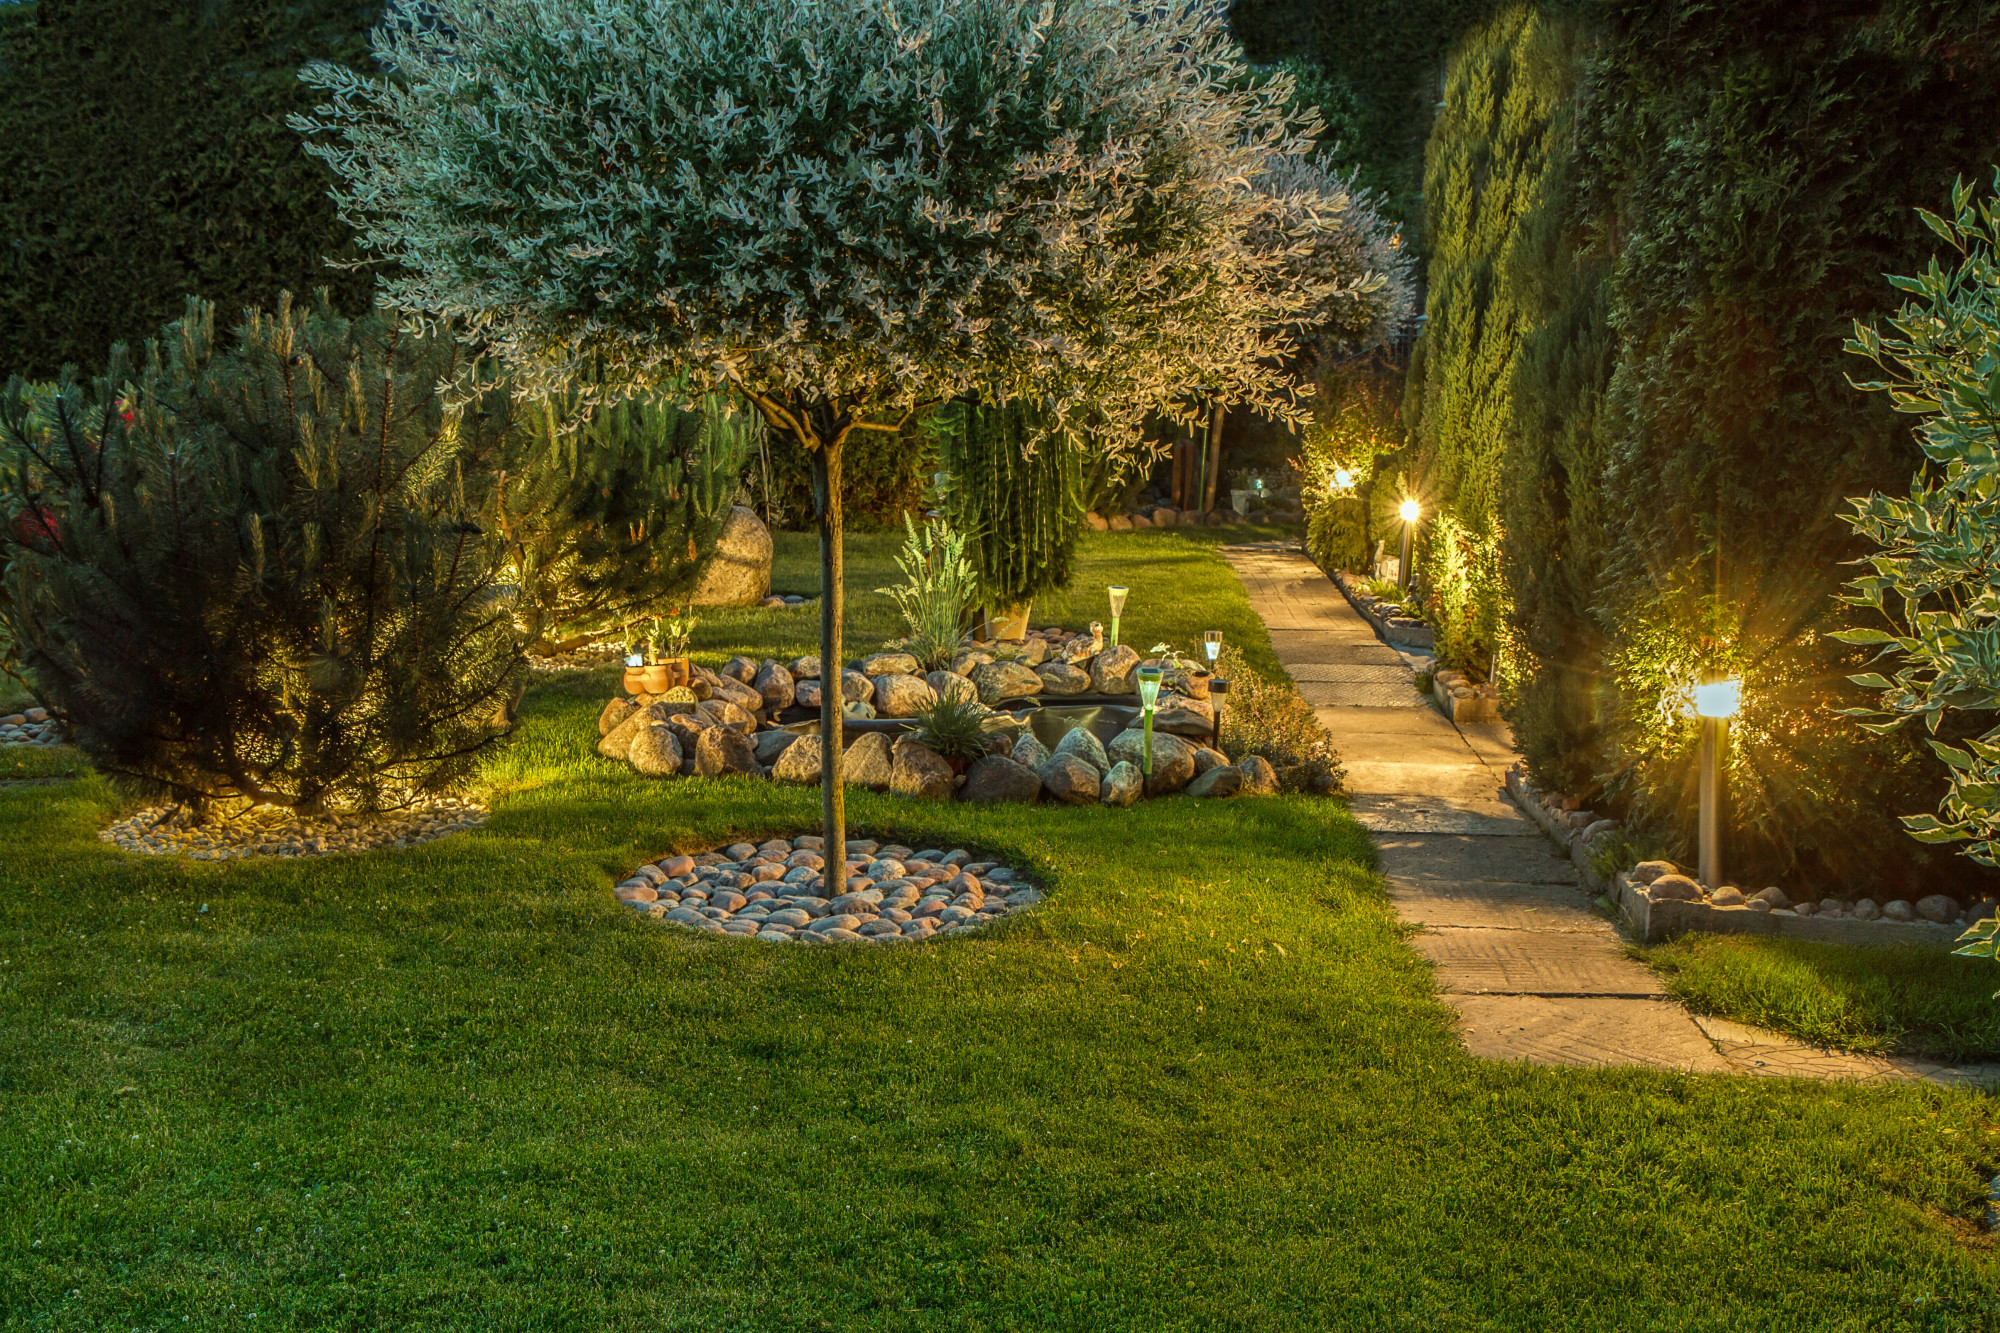 If you're ready to switch up your yard designs, this guide is for you. Read on to learn the top four yard ideas everyone should know to up your exterior look!